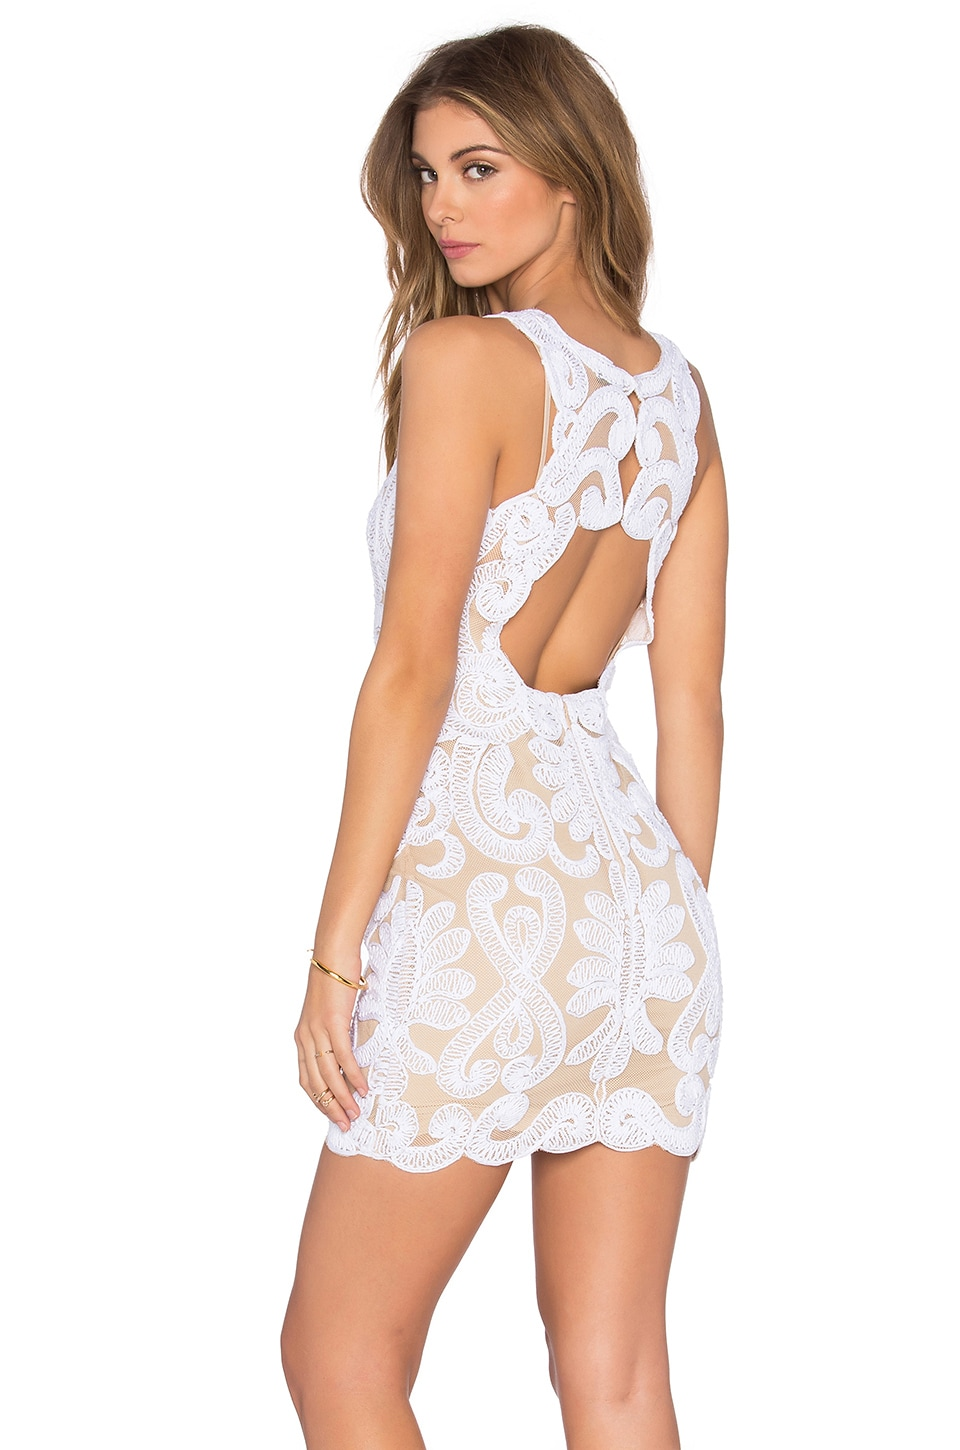 NBD x REVOLVE Embroidered Mini Dress in Ivory & Nude